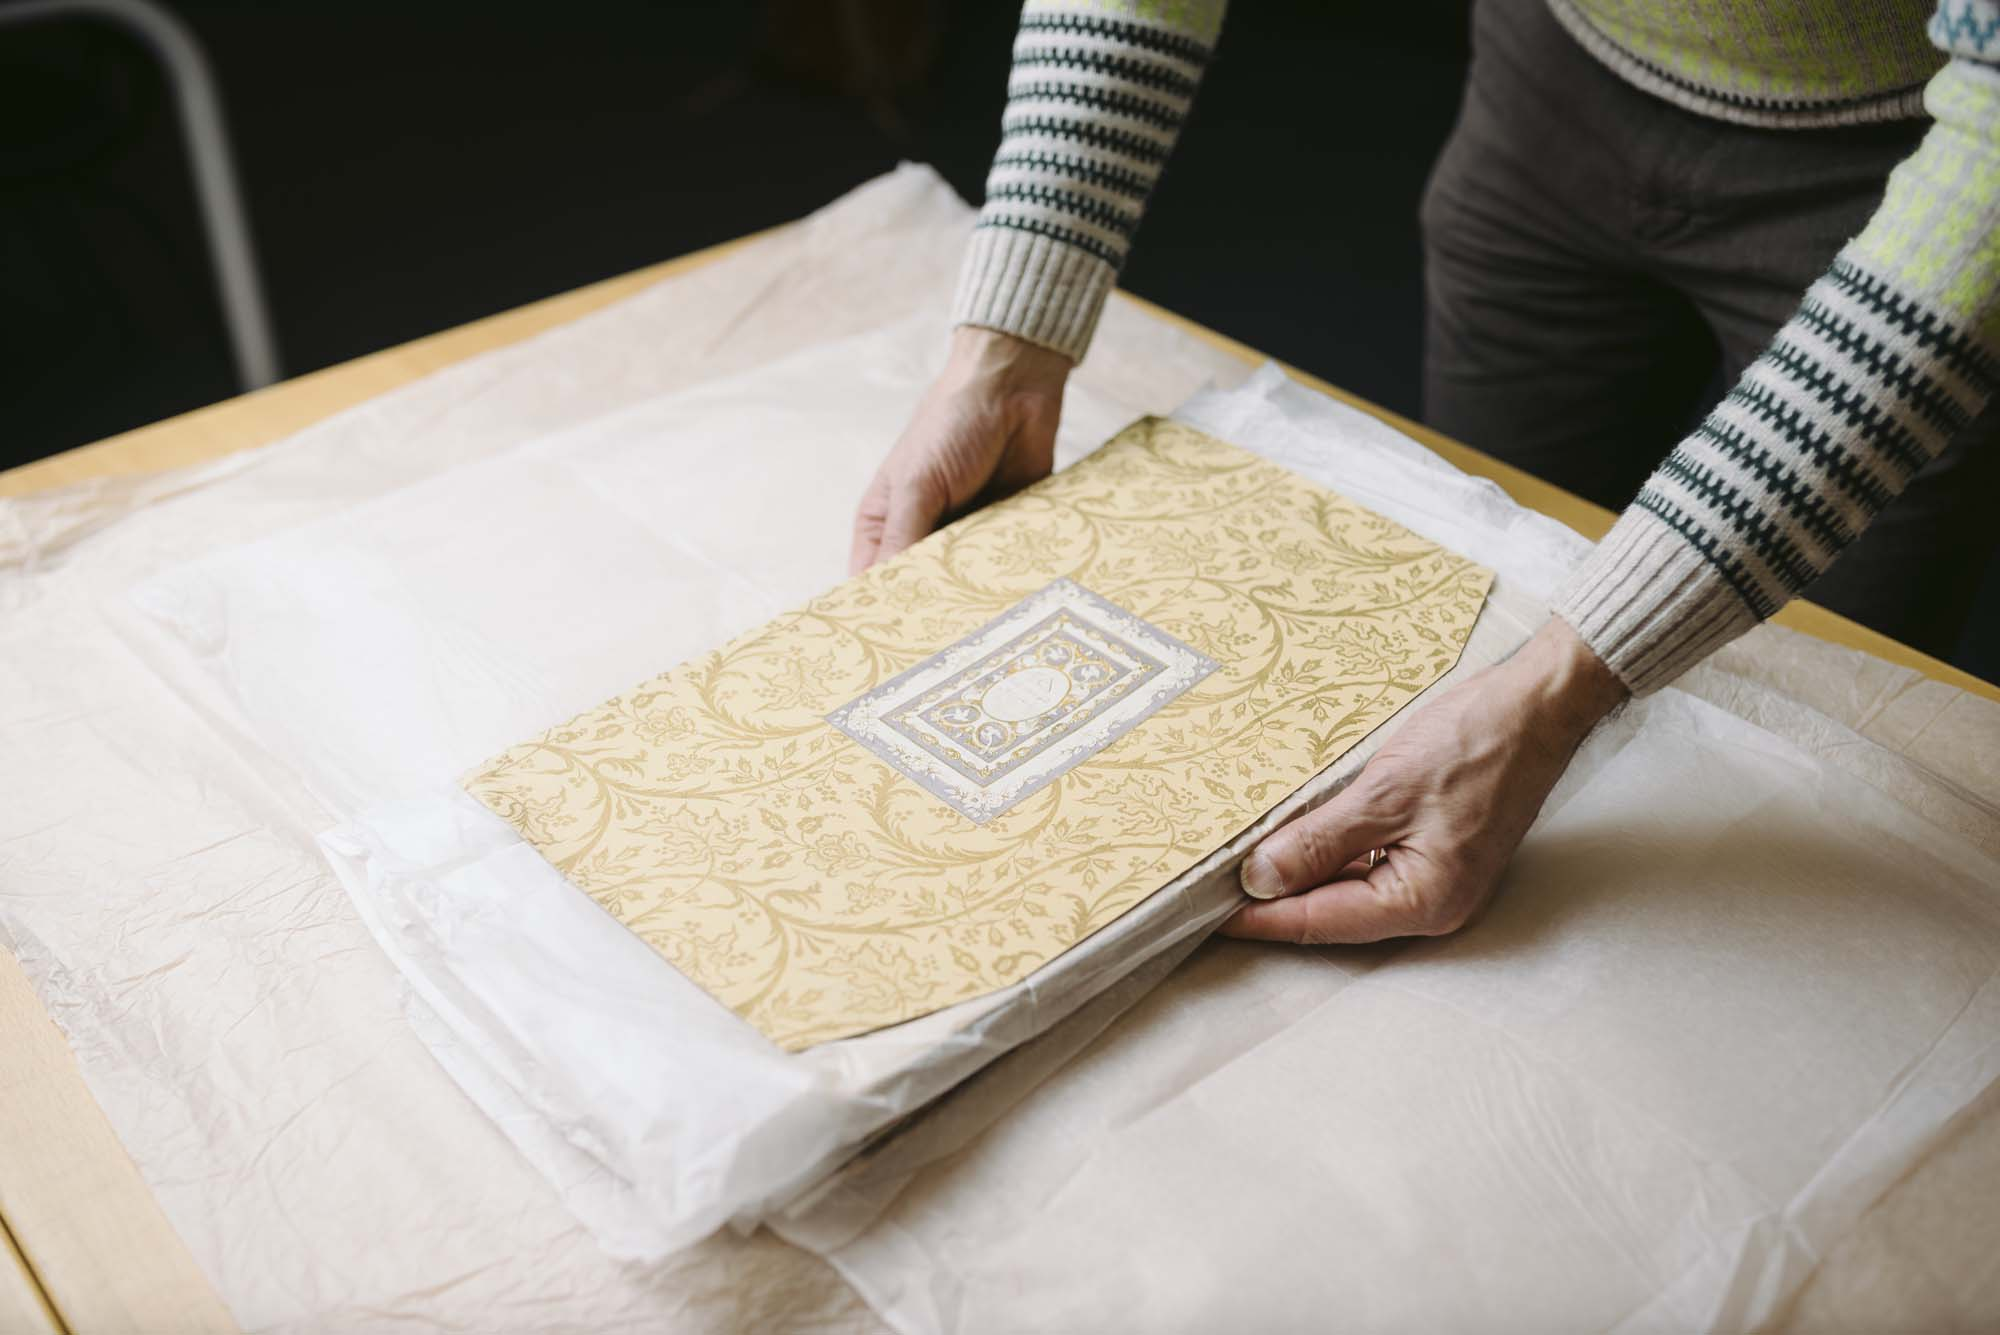 a photo of two hands holding a large pattern book